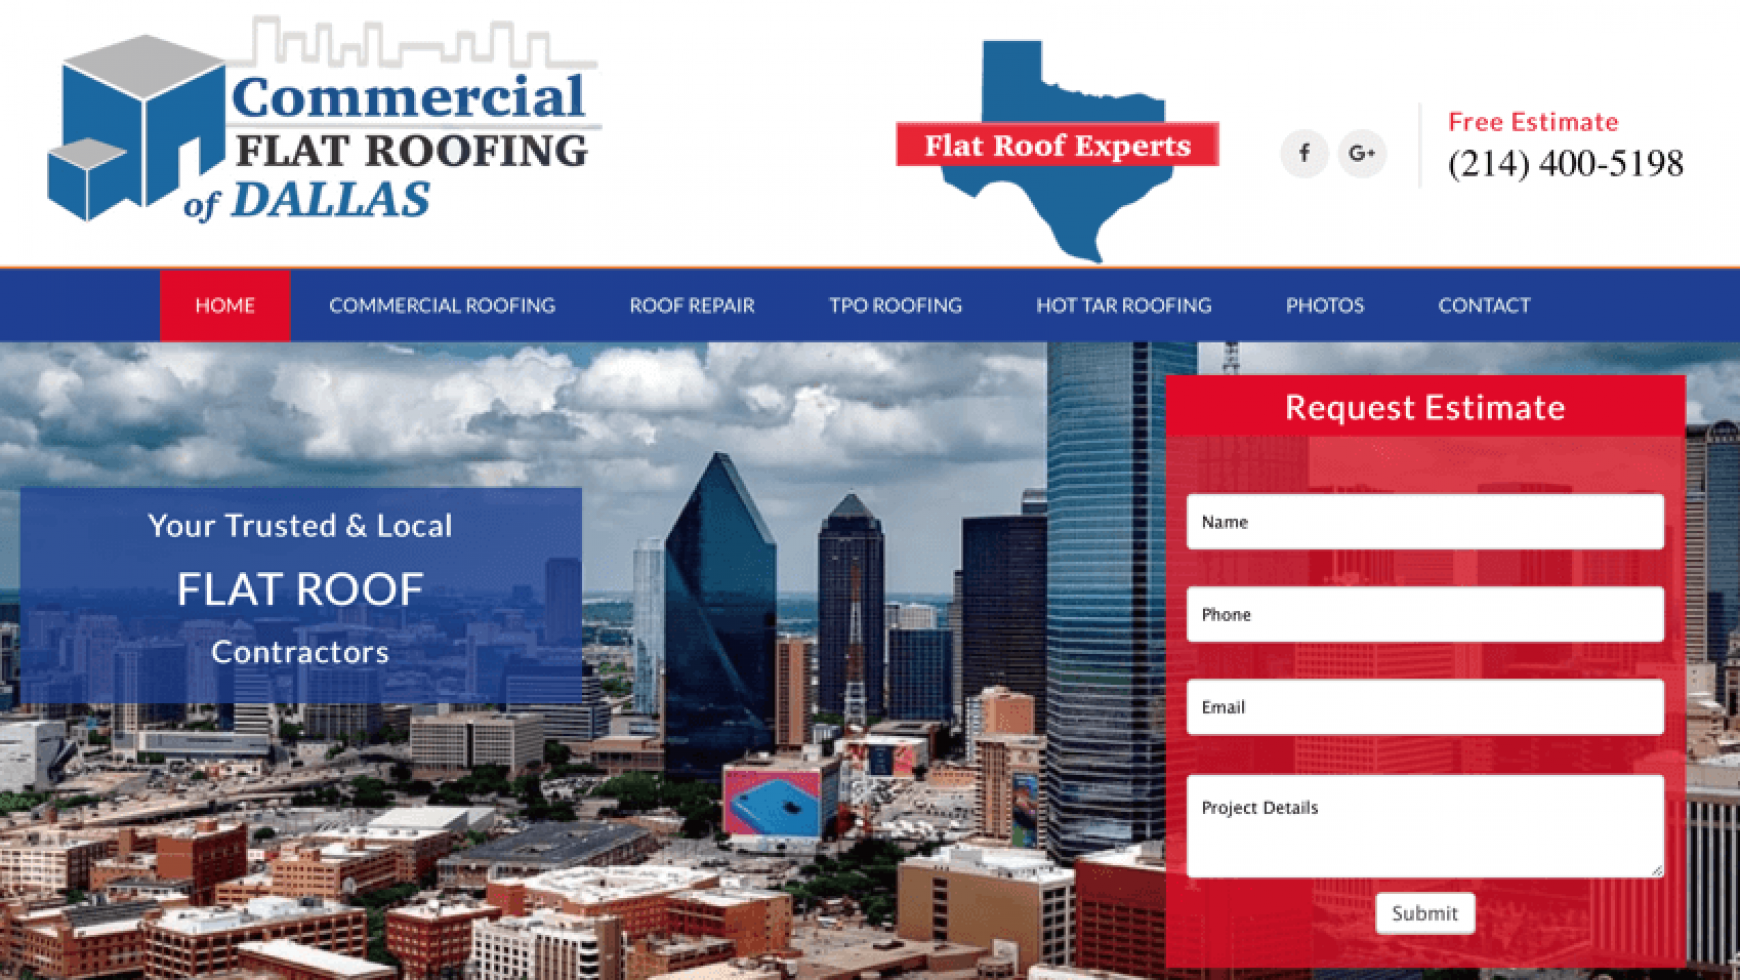 Commercial Flat Roofing of Dallas Website – Dallas, TX